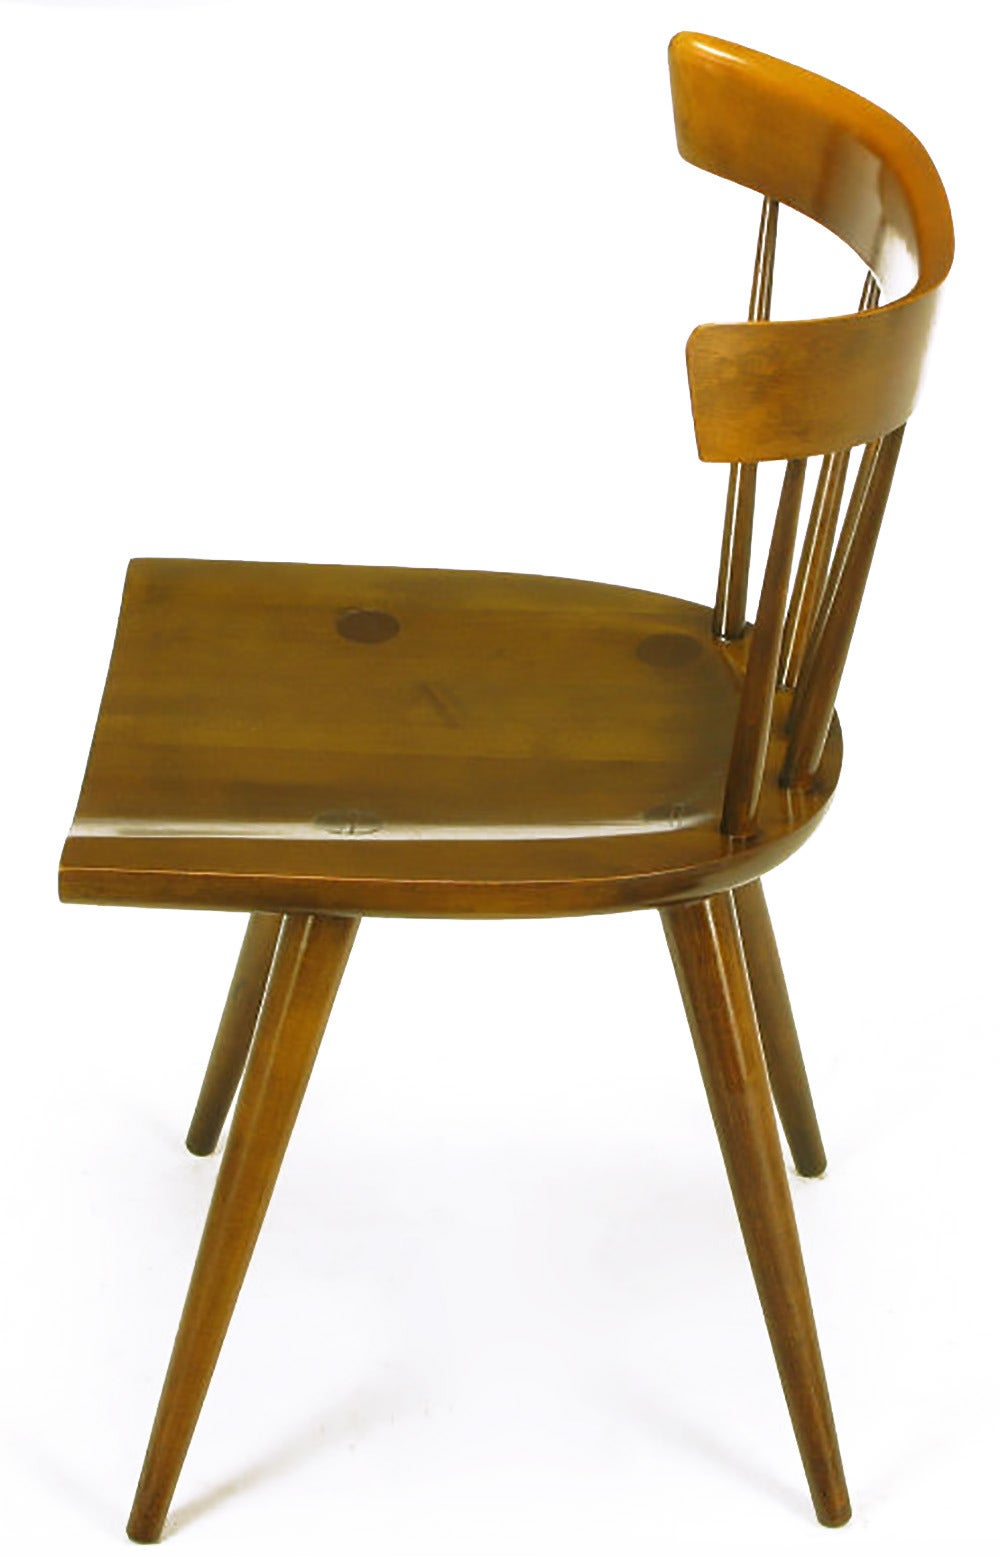 Four Paul McCobb Dark Maple Spindle-Back Dining Chairs In Good Condition For Sale In Chicago, IL